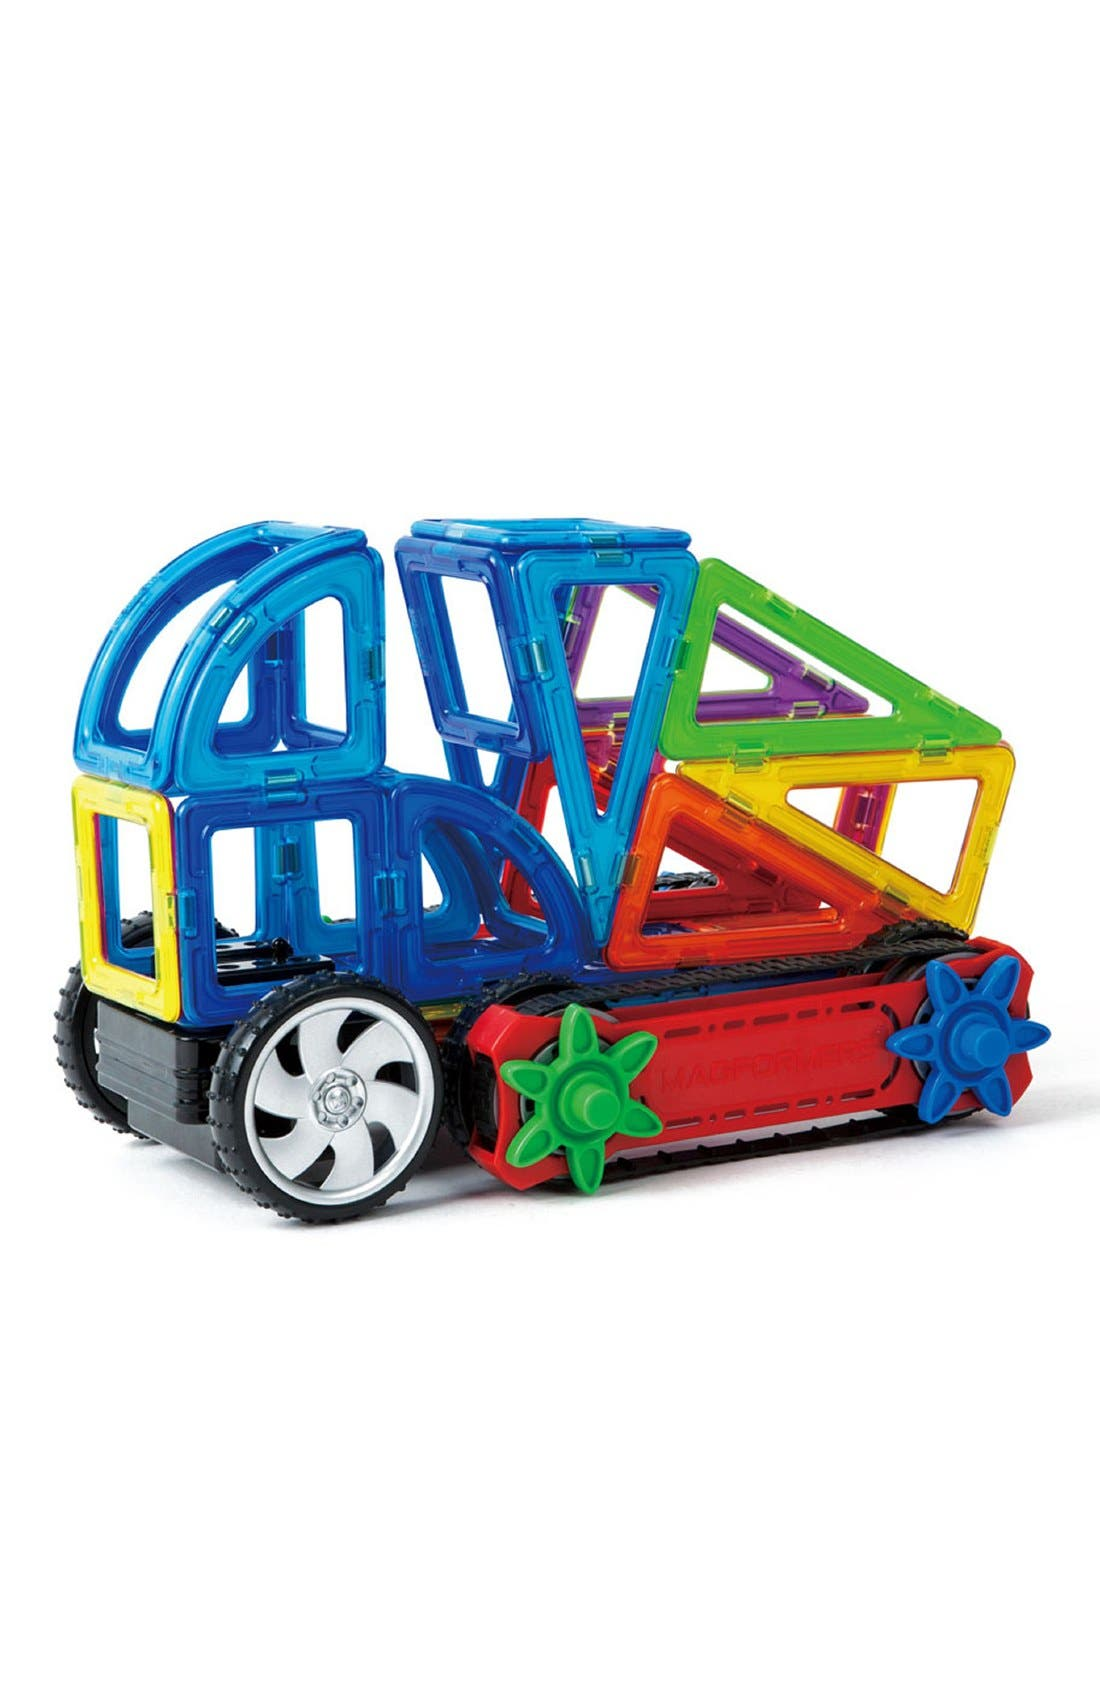 'Dynamic Wheel' Magnetic Remote Control Vehicle Construction Set,                             Alternate thumbnail 2, color,                             Rainbow